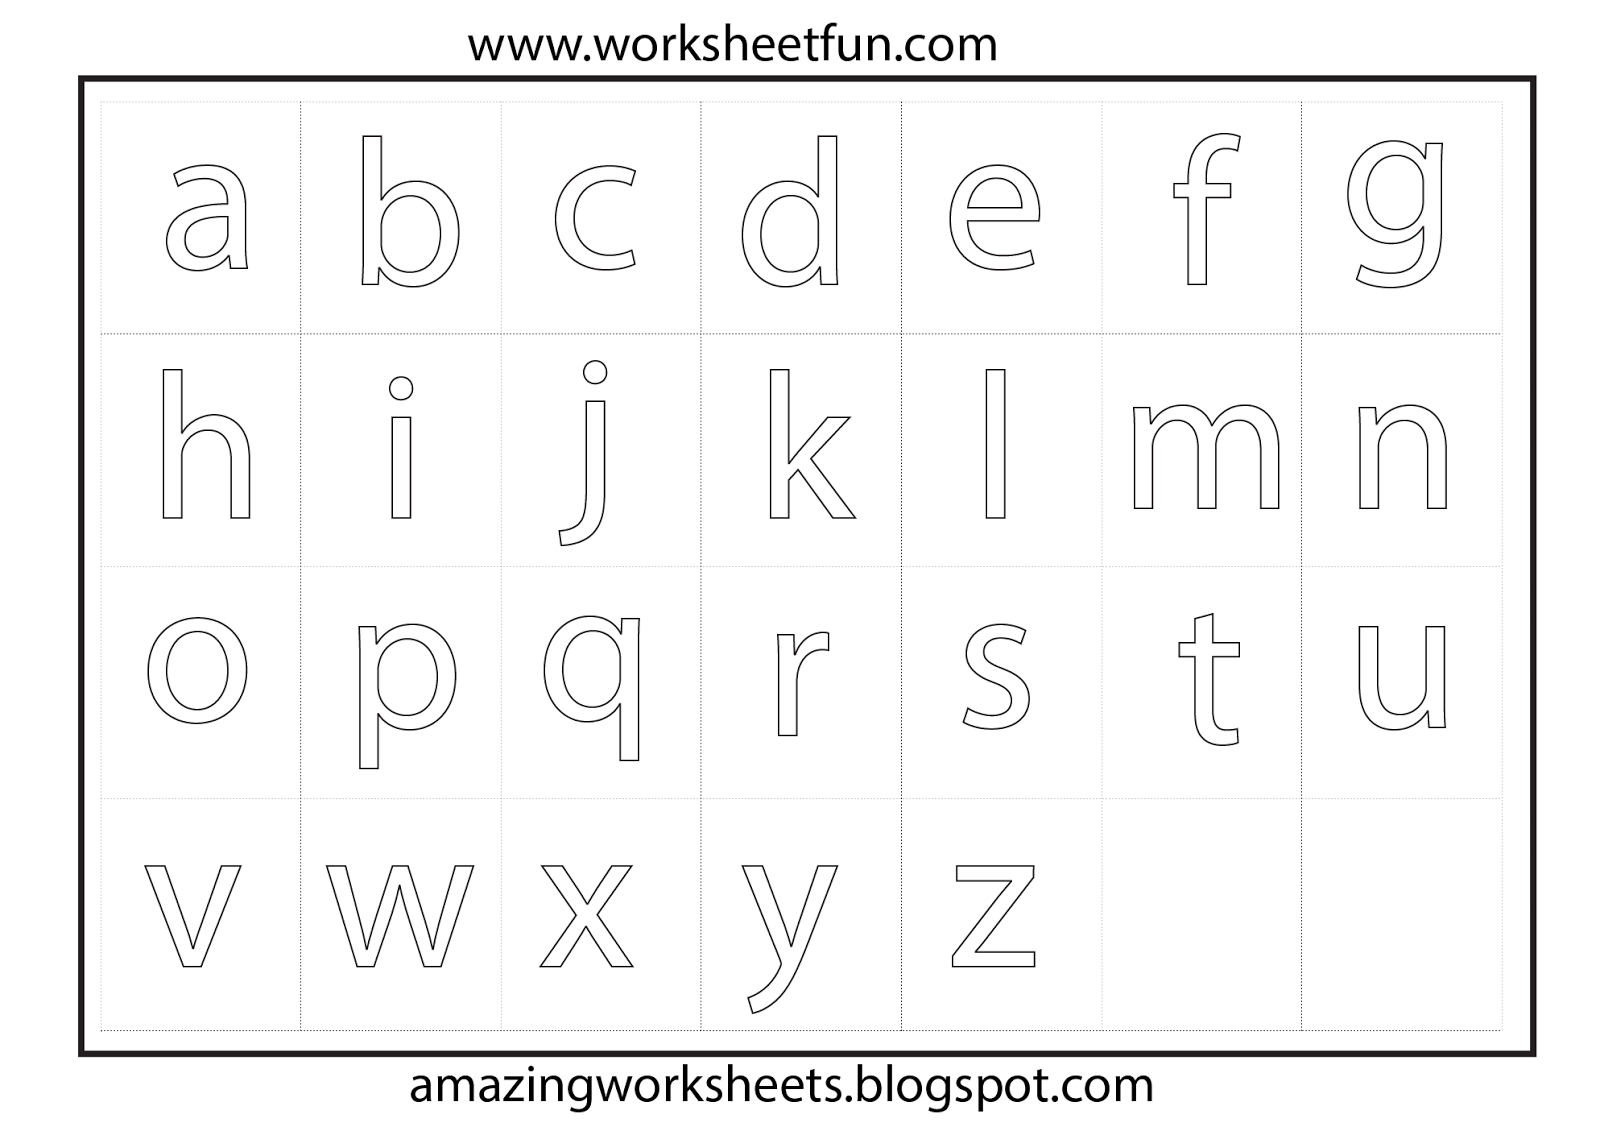 44 Info A Z Colouring Worksheets Download Printable